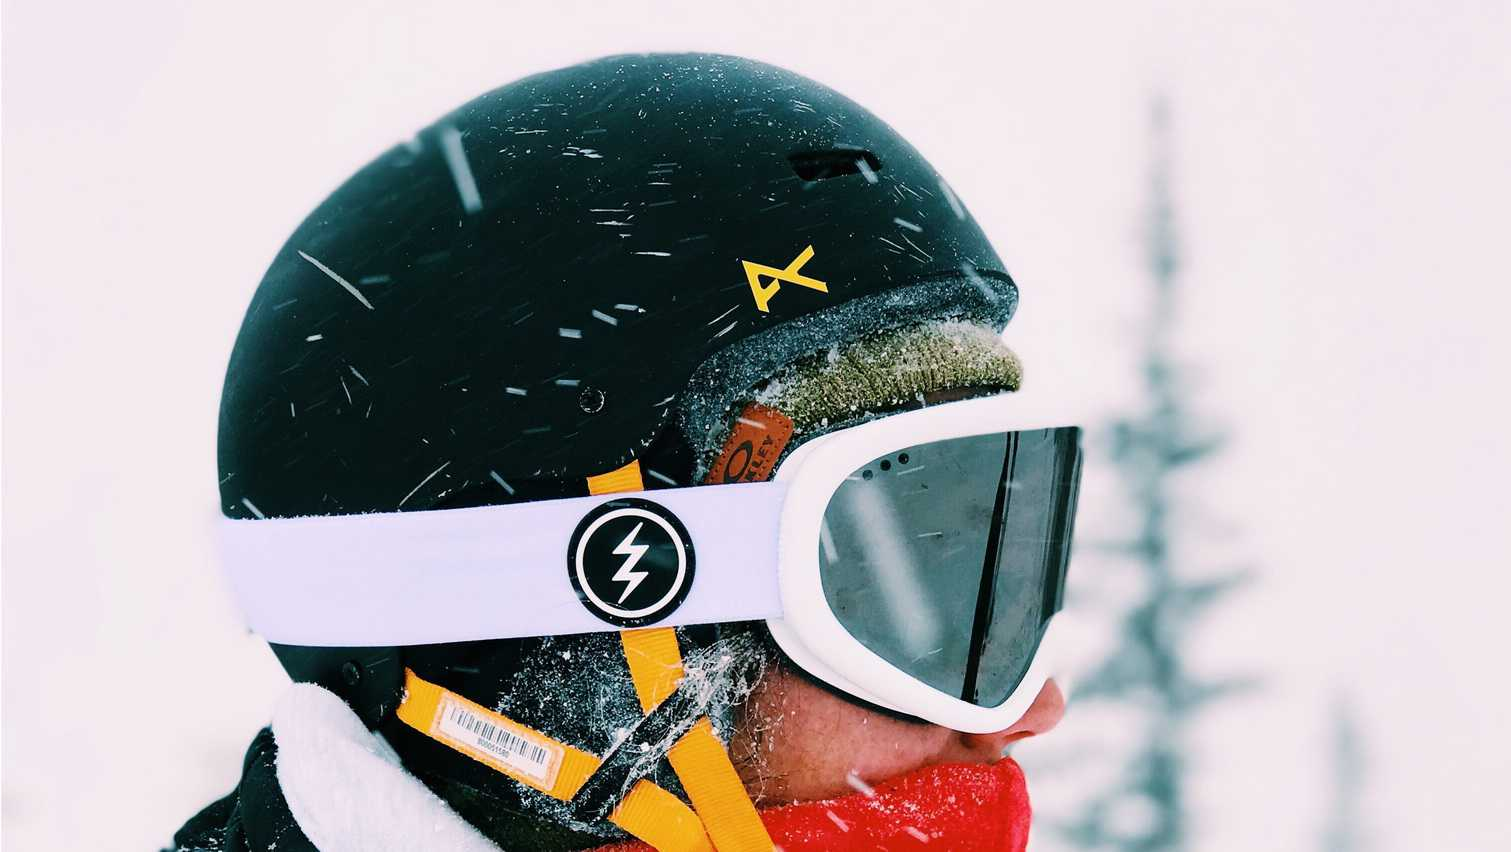 53aede7361e Safety first is the most important rule in the world of snowboarding